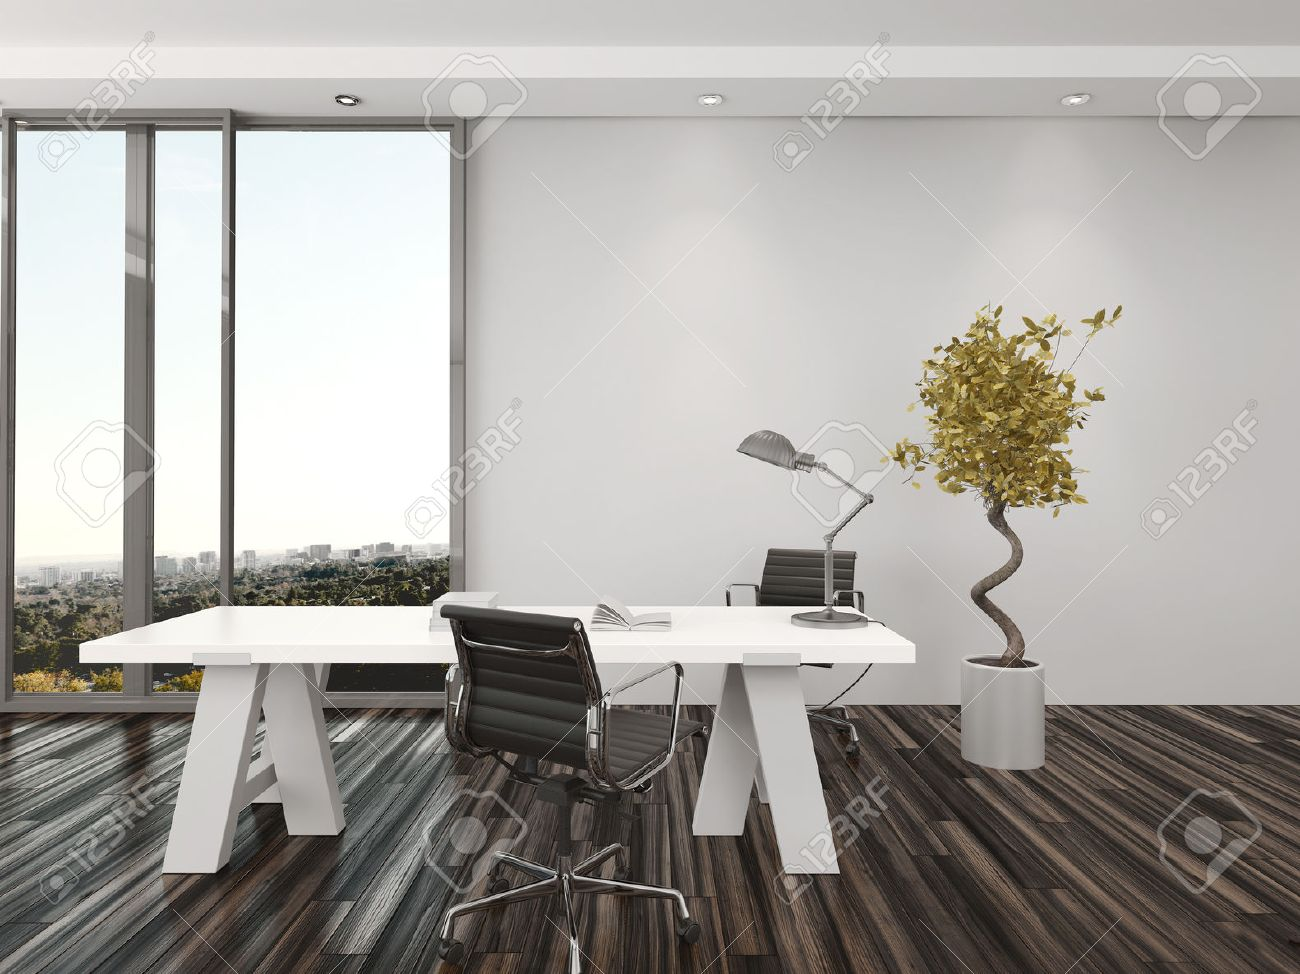 Modern Home Office Interior Design With Two Office Chairs On.. Stock ...